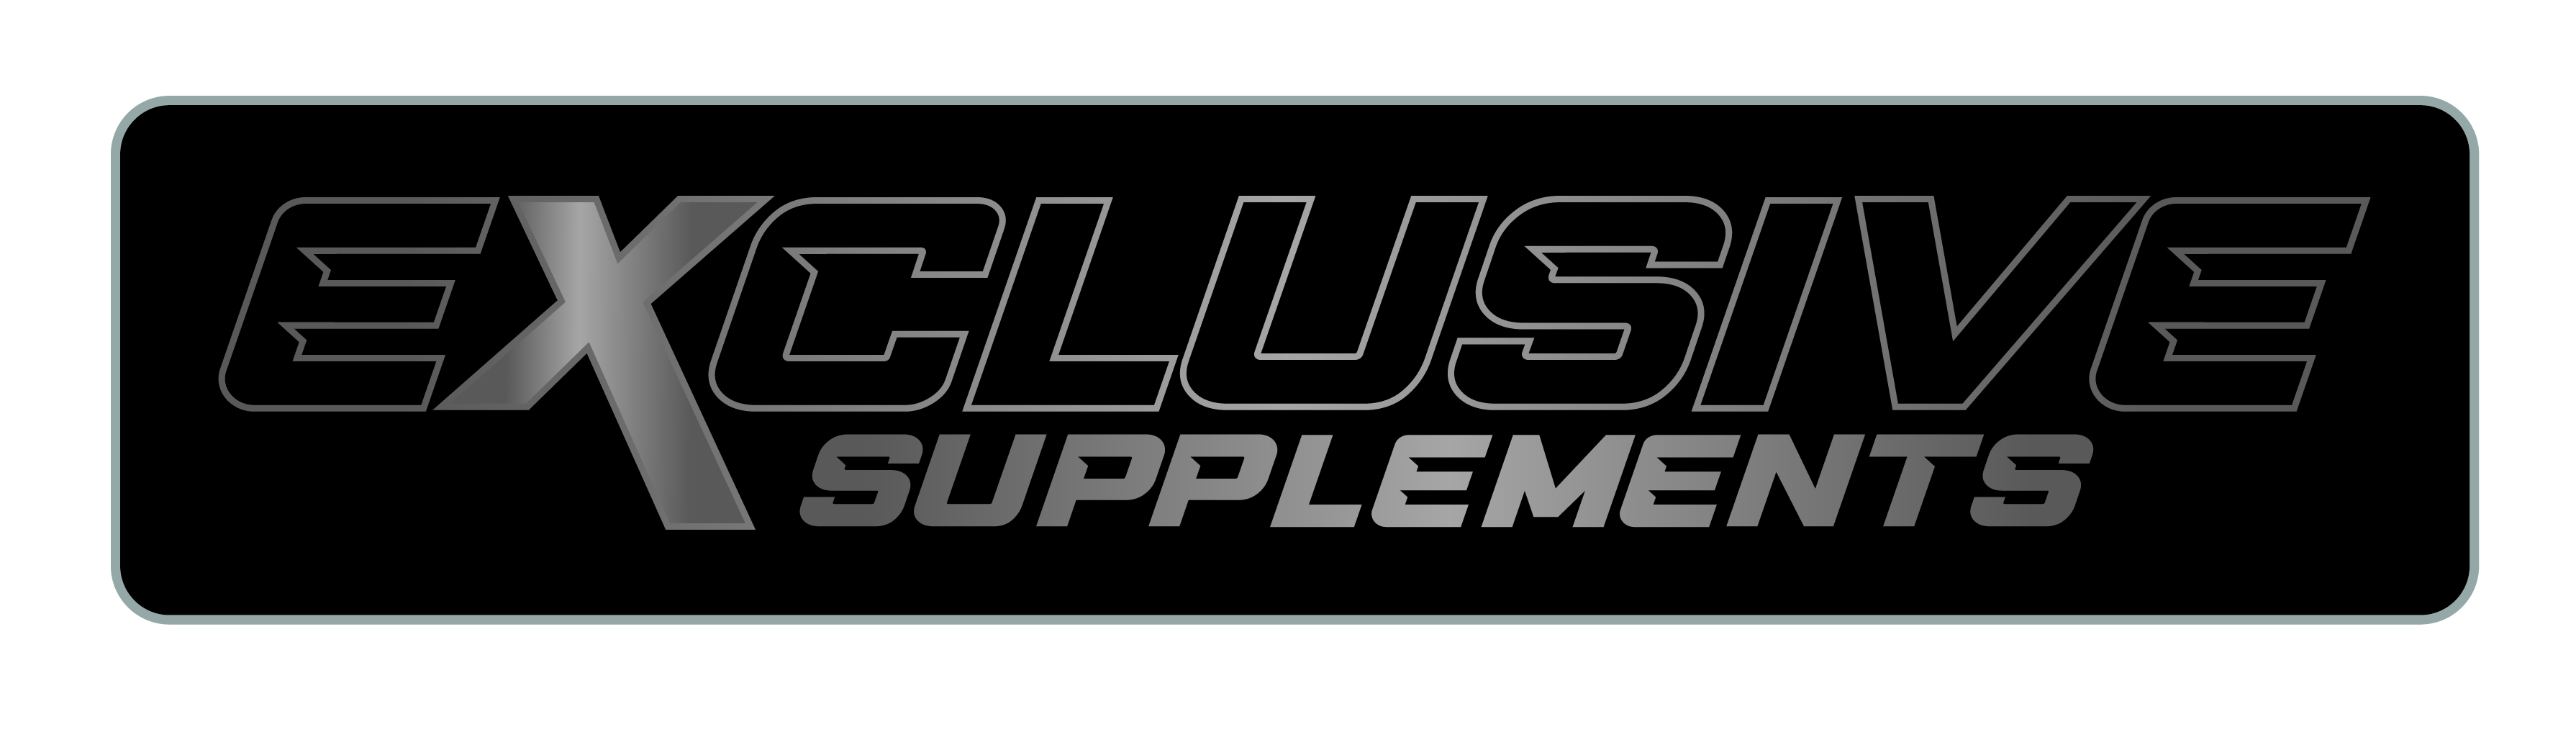 Exclusive Supplements